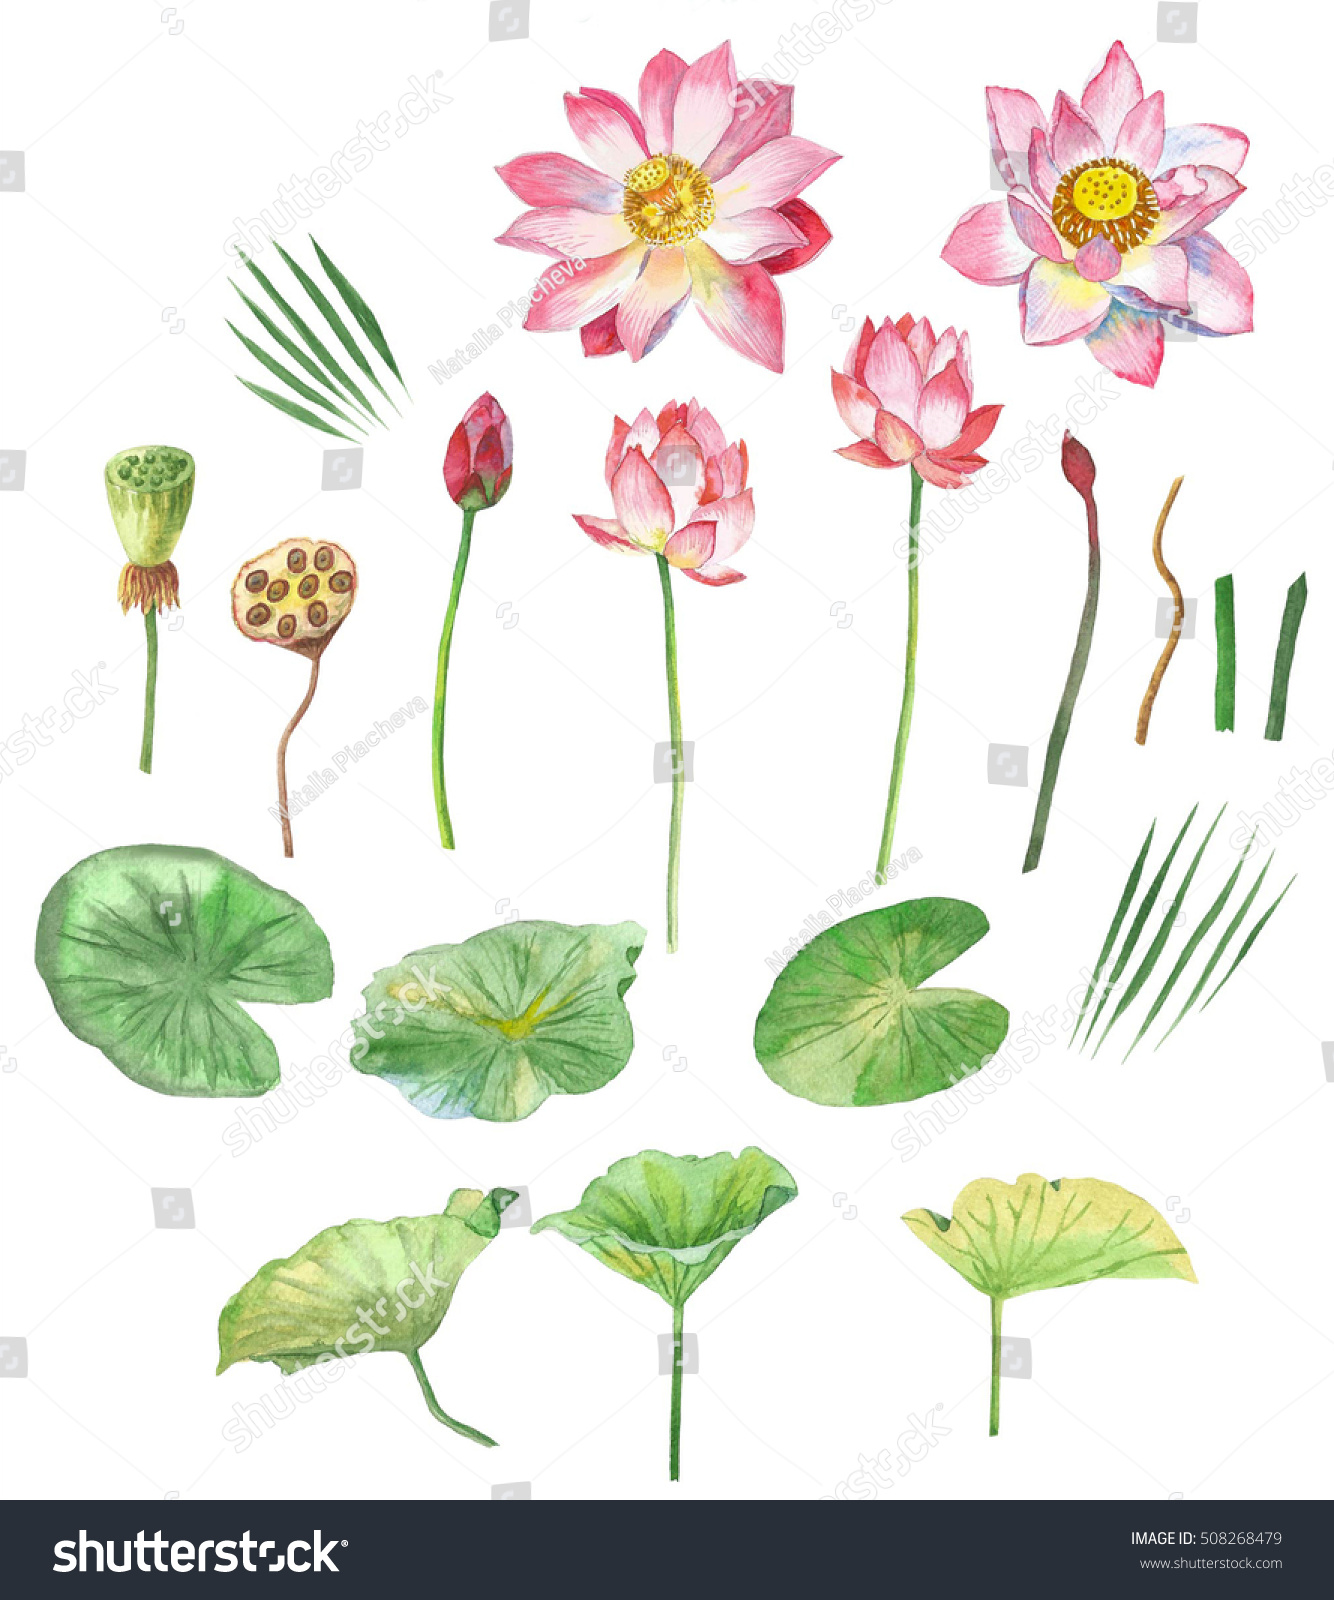 Lotus flowers hand painted watercolor clip stock illustration lotus flowers hand painted watercolor clip art izmirmasajfo